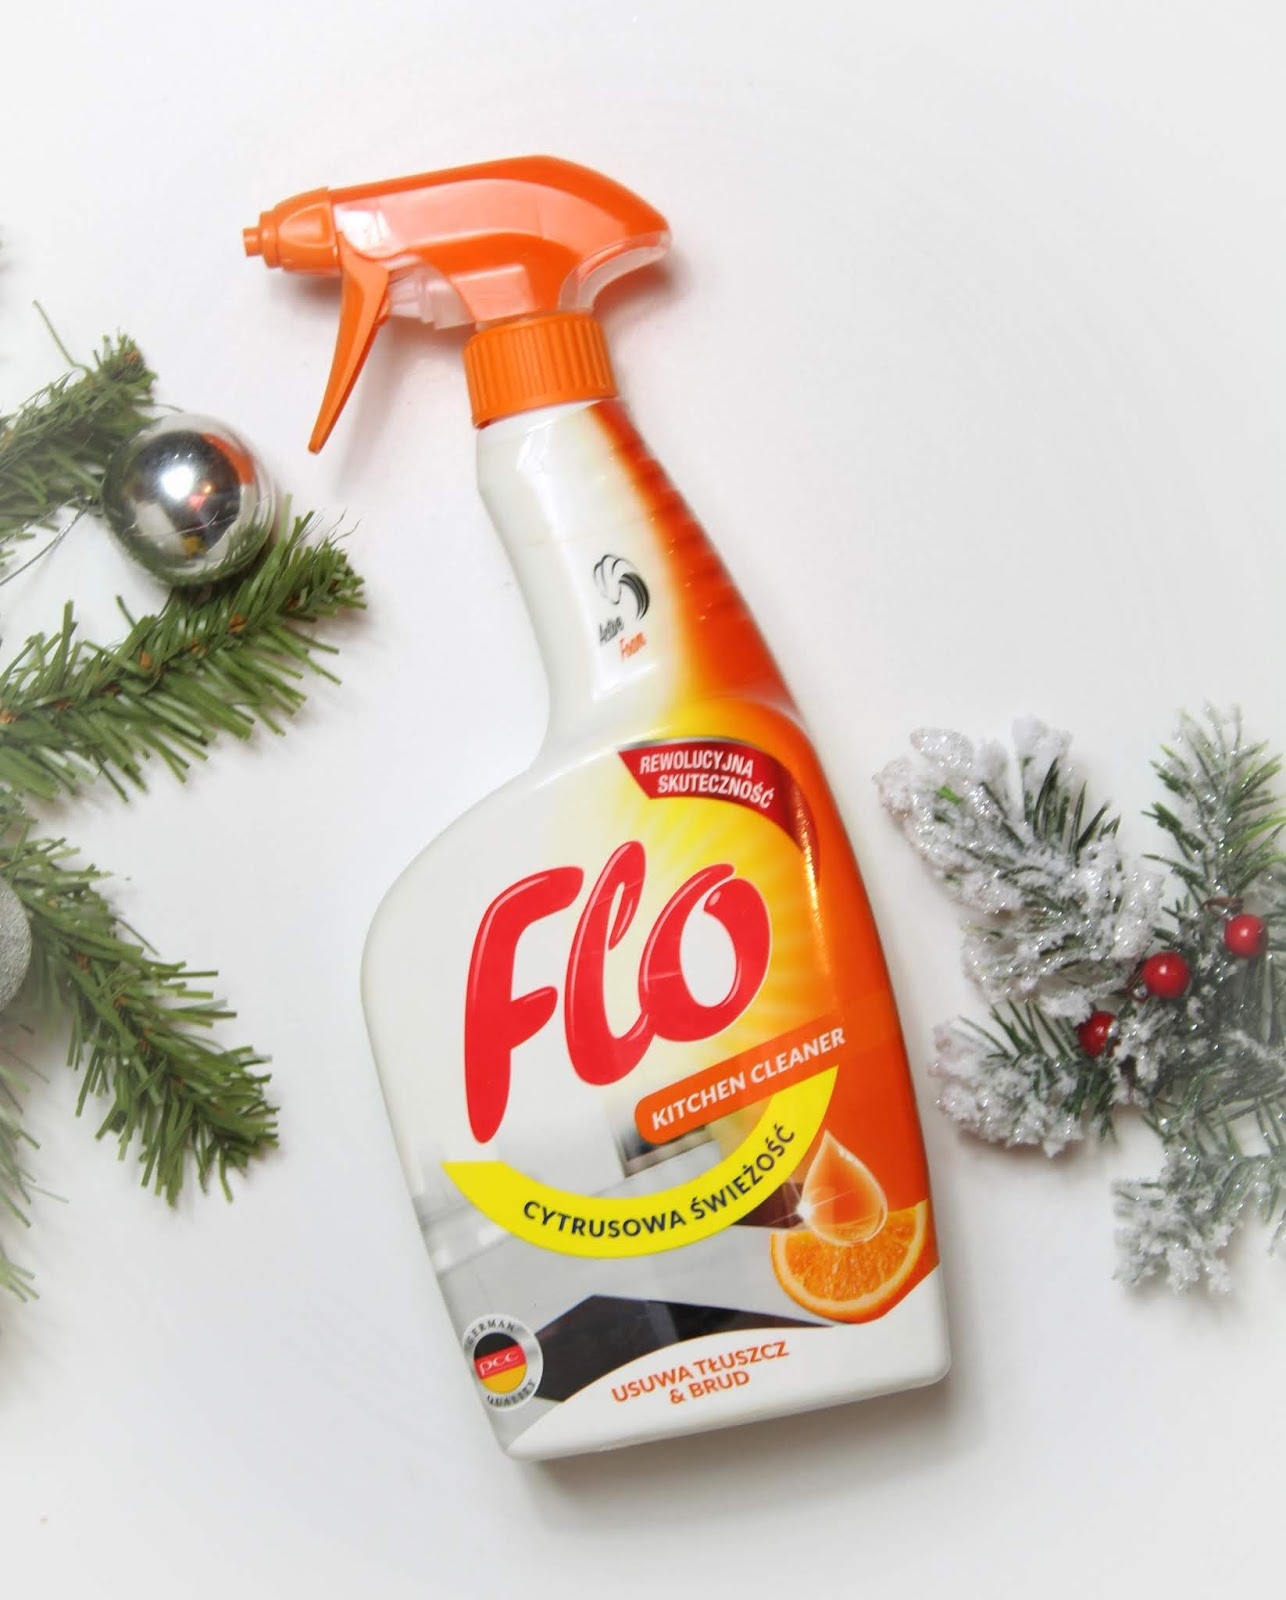 FLO Kitchen Cleaner